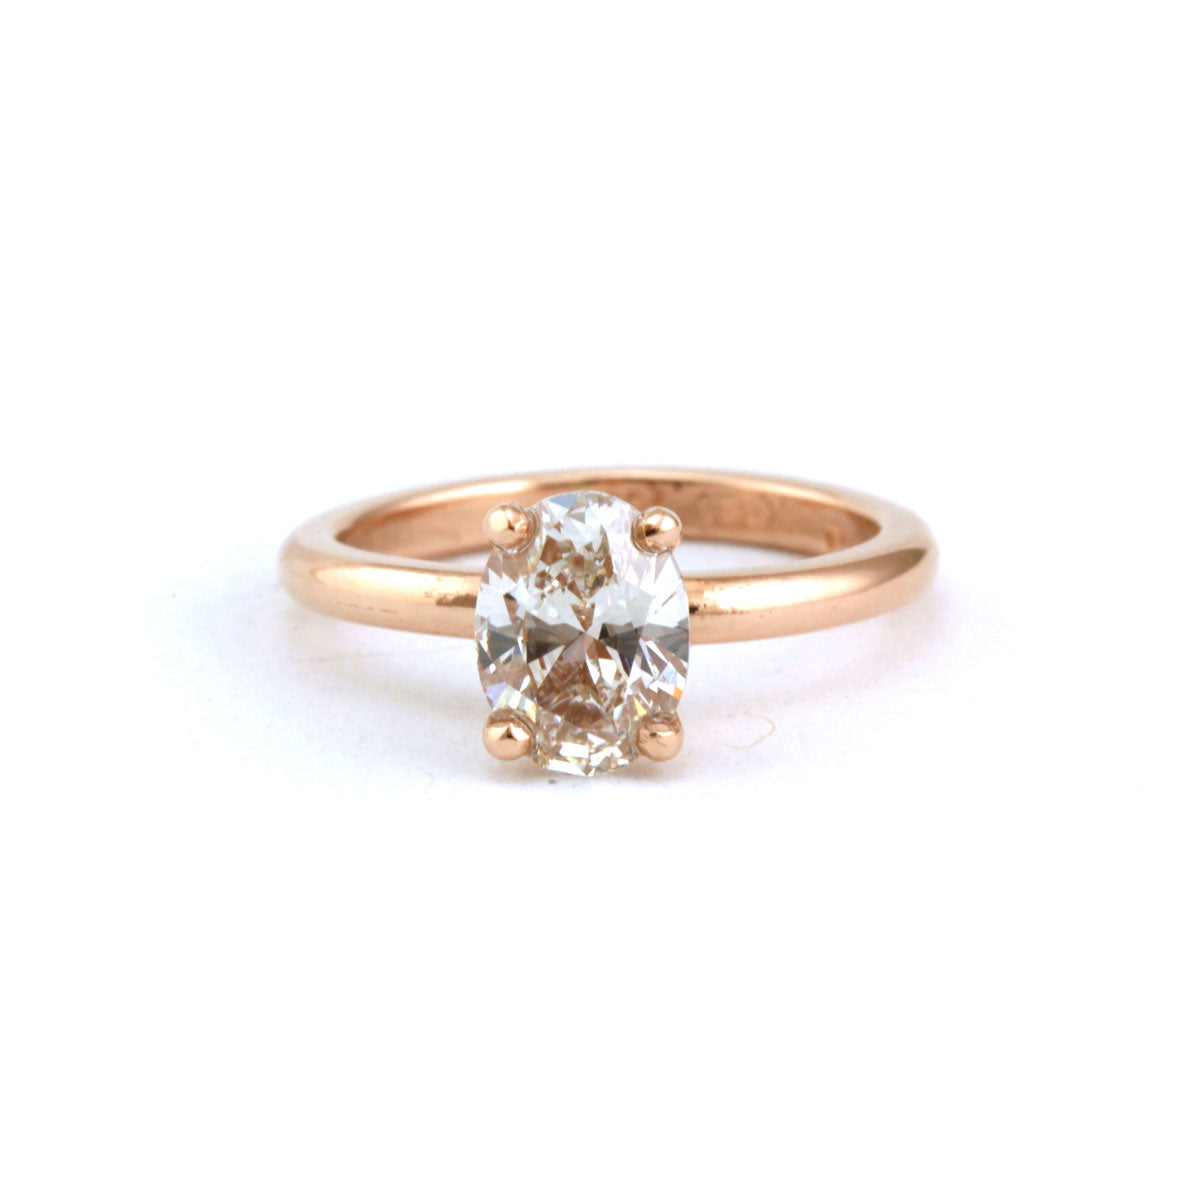 Oval cut 1ct diamond engagement ring in 18ct rose gold.